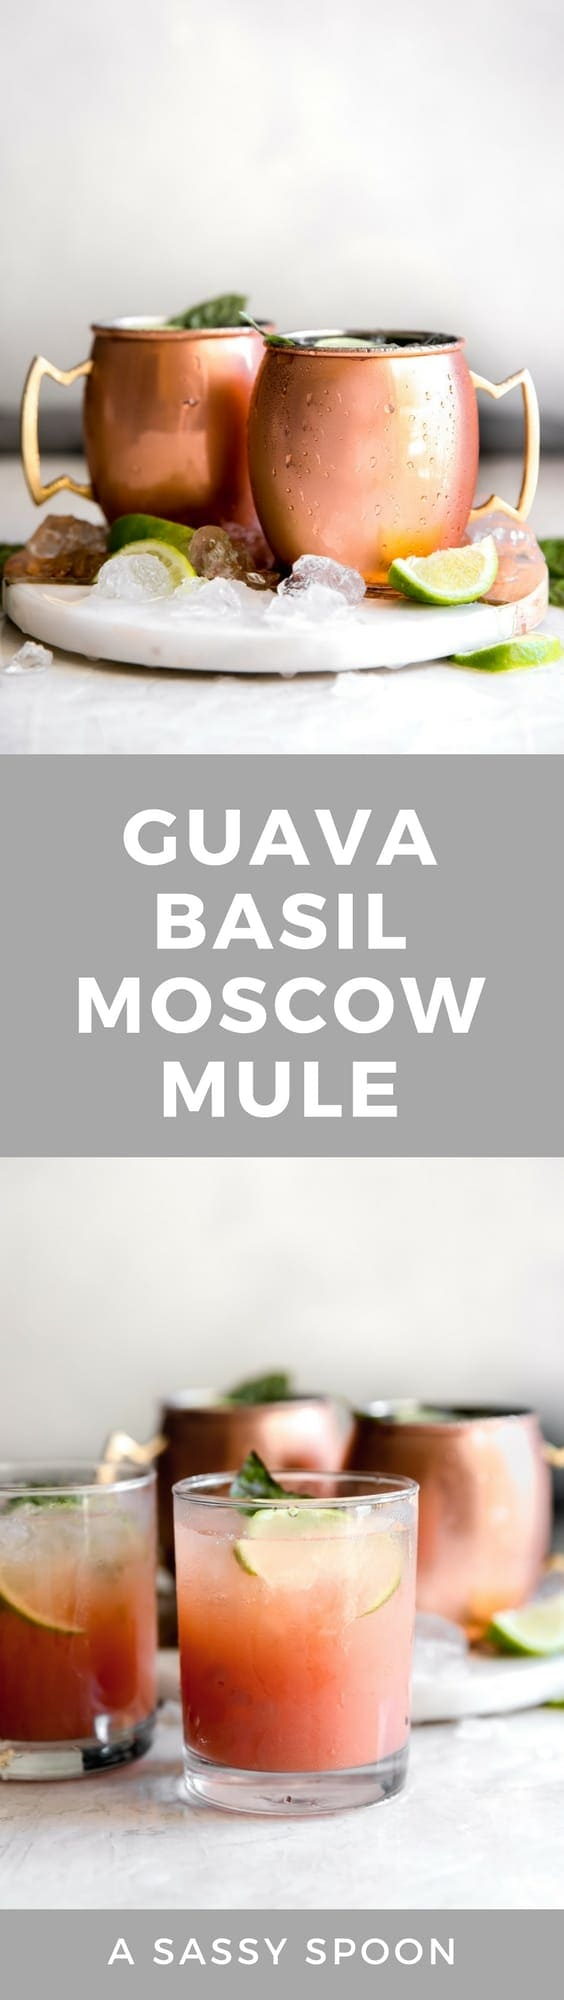 Guava Basil Moscow Mule. A twist to the traditional refreshing Vodka cocktail made with spicy ginger beer, guava nectar, fresh lime and sweet basil. Delicious drink for any time of year!